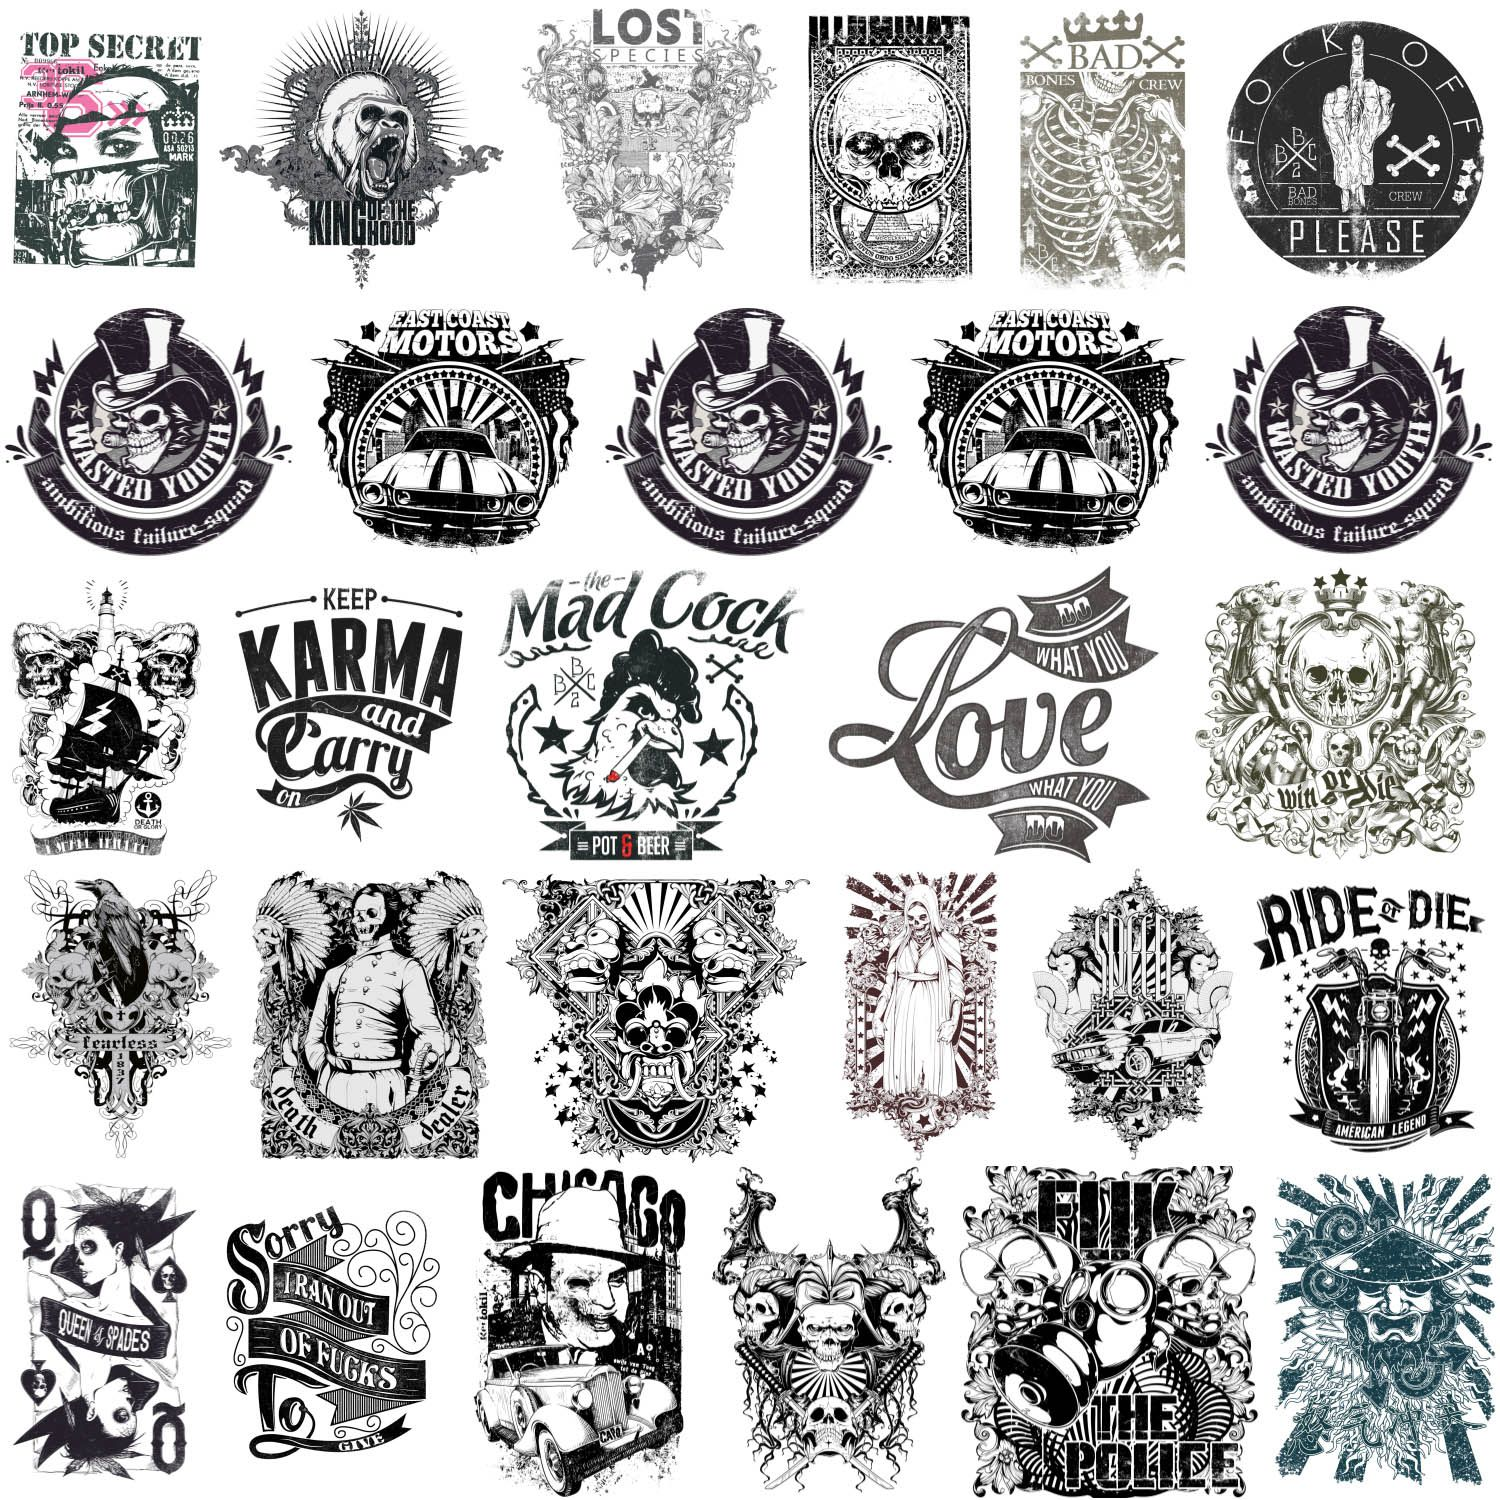 Free t-shirt design - Scary T Shirt Designs Or Tattoos With Skulls Bad Bones Biker Theme And